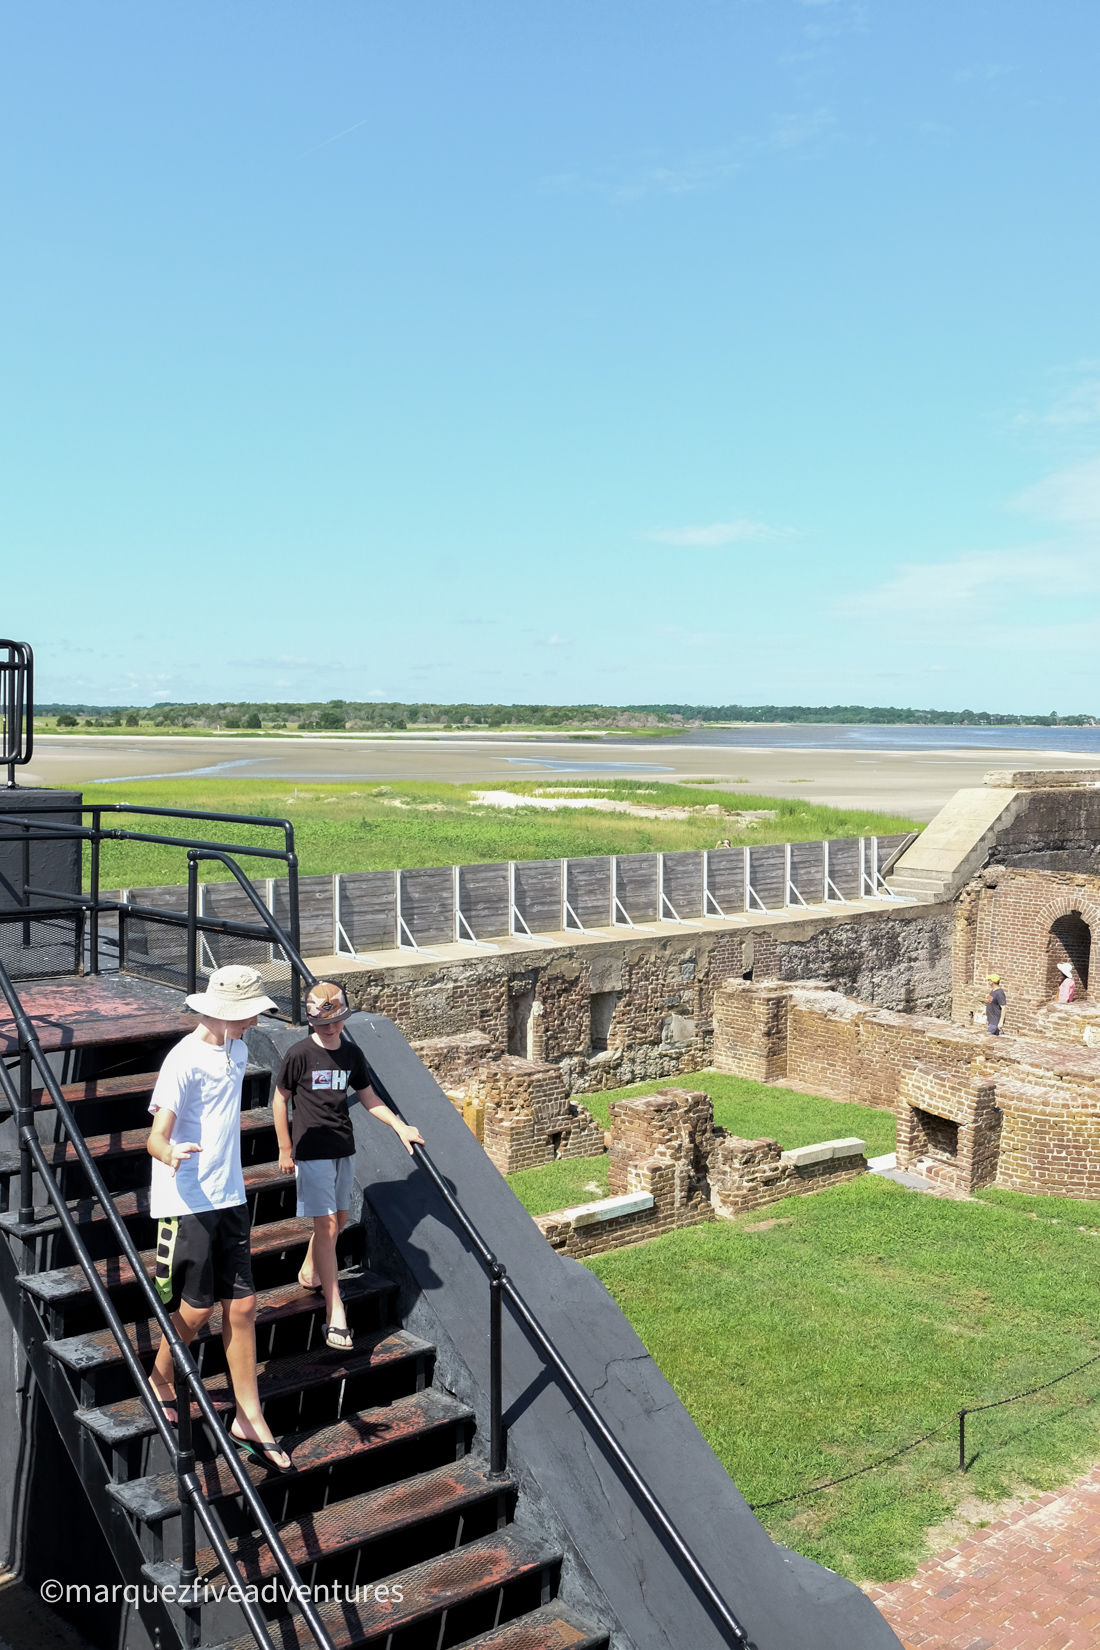 Exploring the grounds of Fort Sumter. Charleston, South Carolina